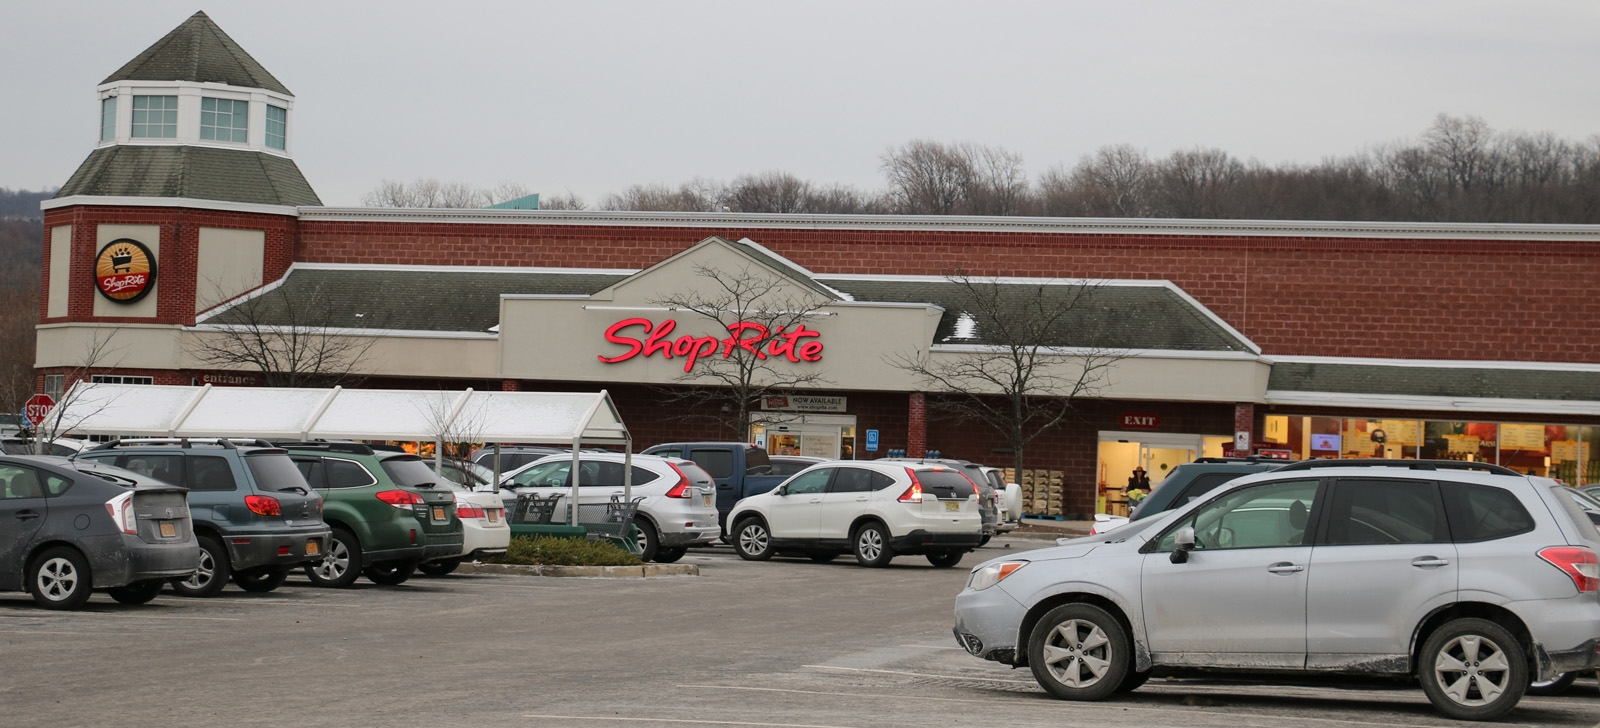 Warwick shoprite planning expansion warwick valley chamber of commerce falaconquin